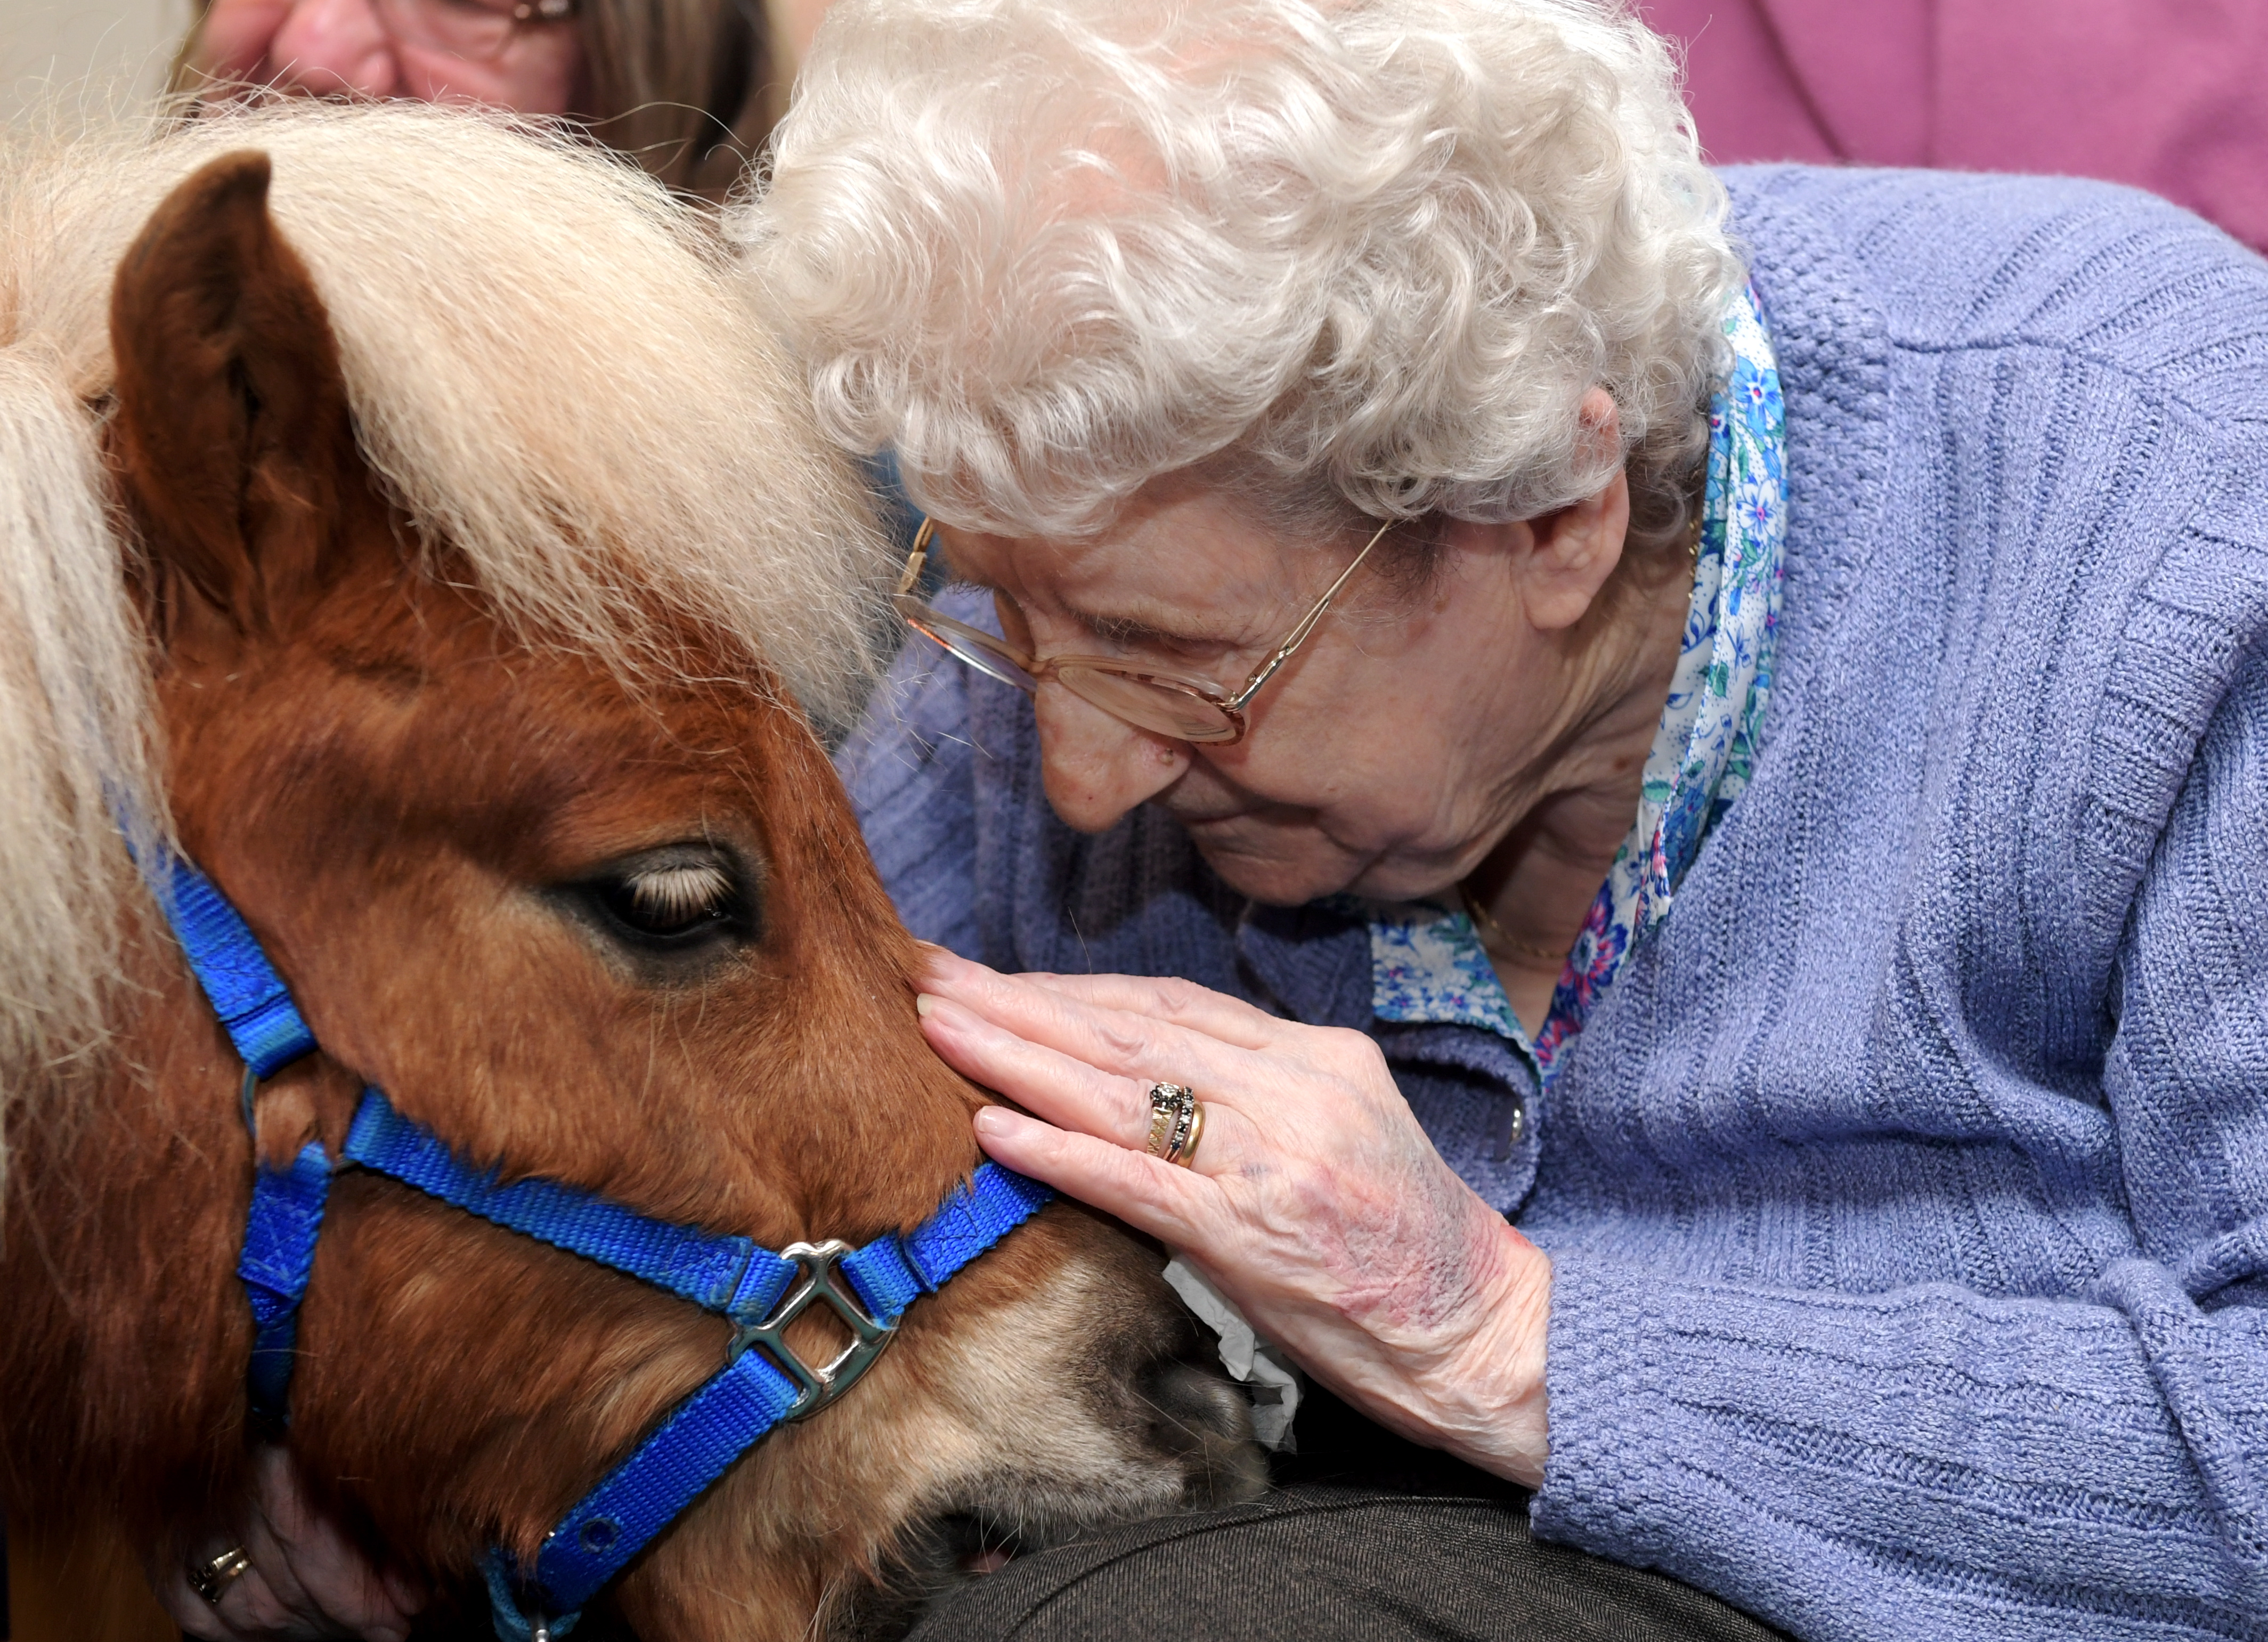 Residents at Hanover Court sheltered housing in Inverbervie were visited by therapet Shetland ponies provided by Therapy Ponies Scotland. Pictured is 92 yr old Doris Paton with Flicker.